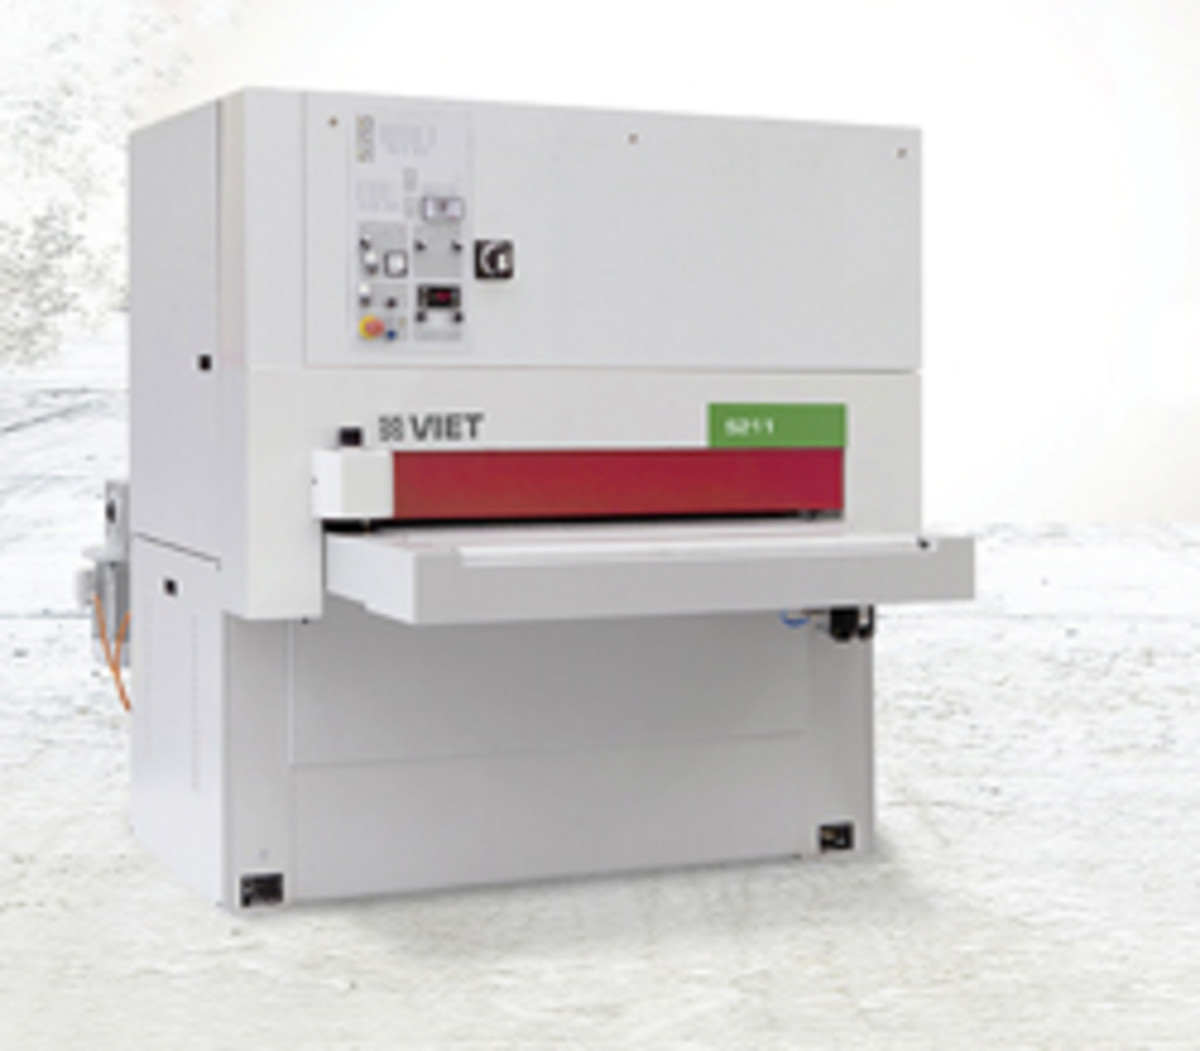 Biesse offers nine Viet brand wide-belt sanders, starting with the entry-level S211 designed for smaller shops.